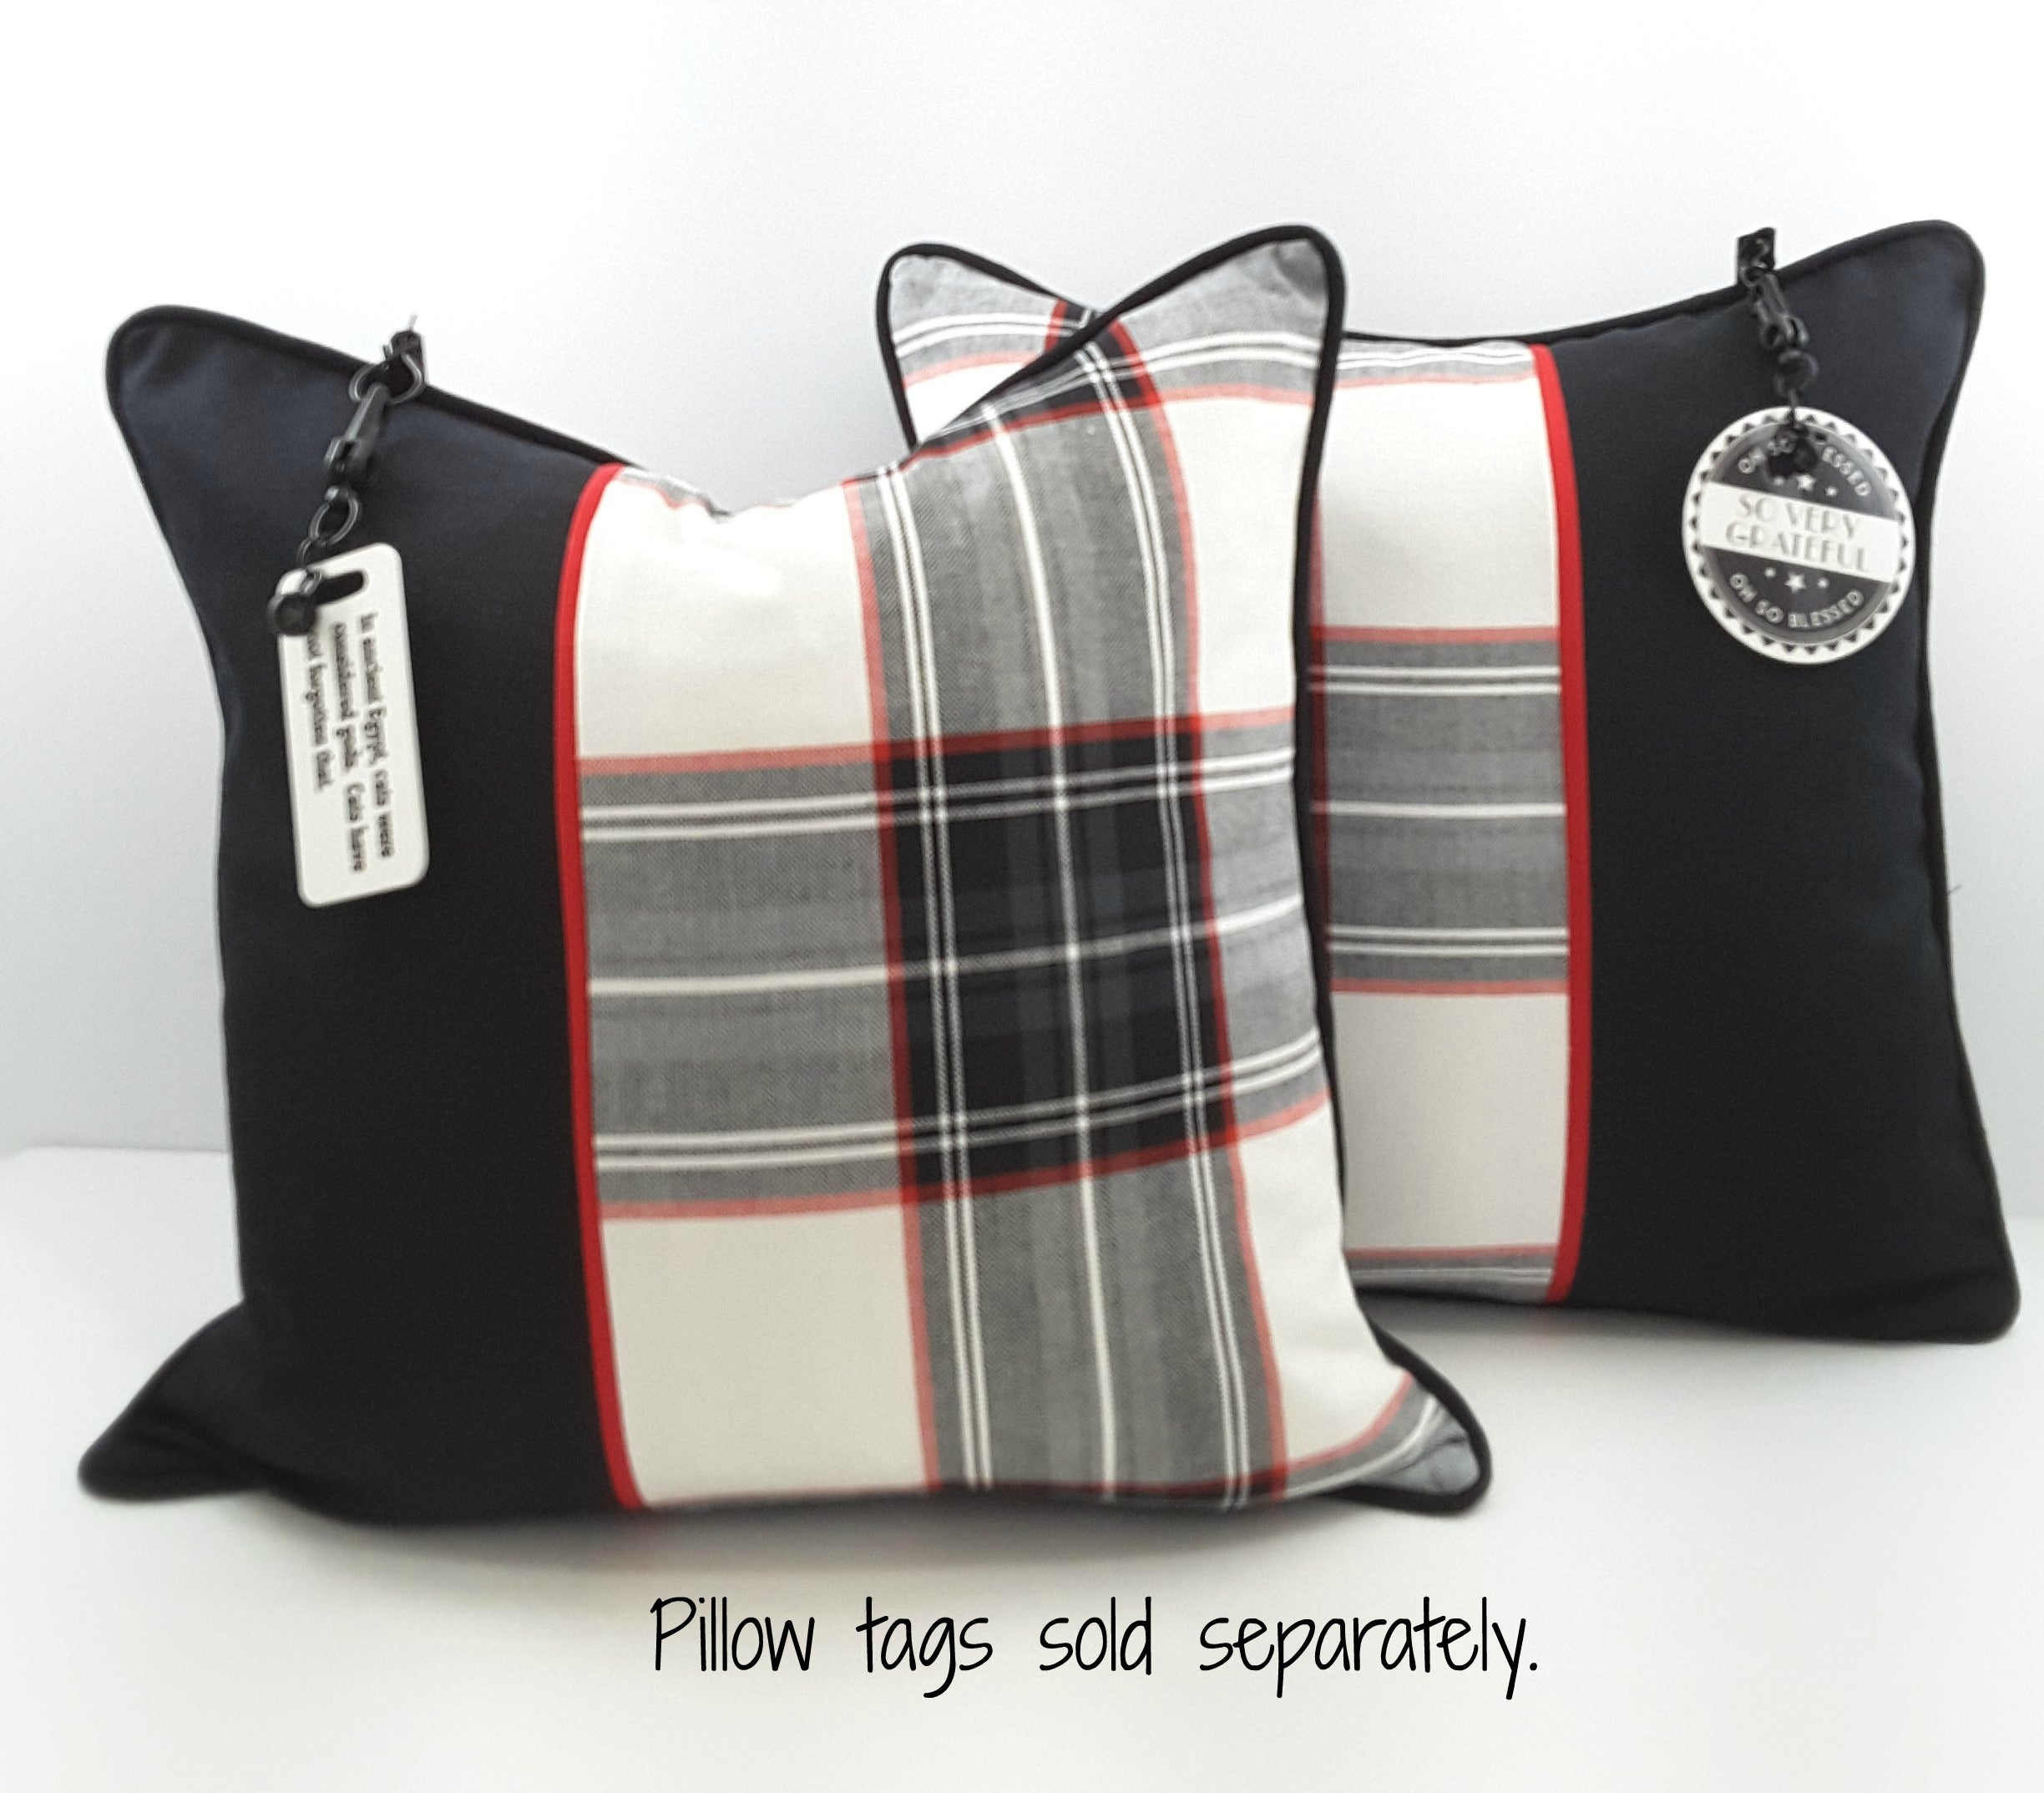 Decorator Plaid Pillows with Hanging Charms